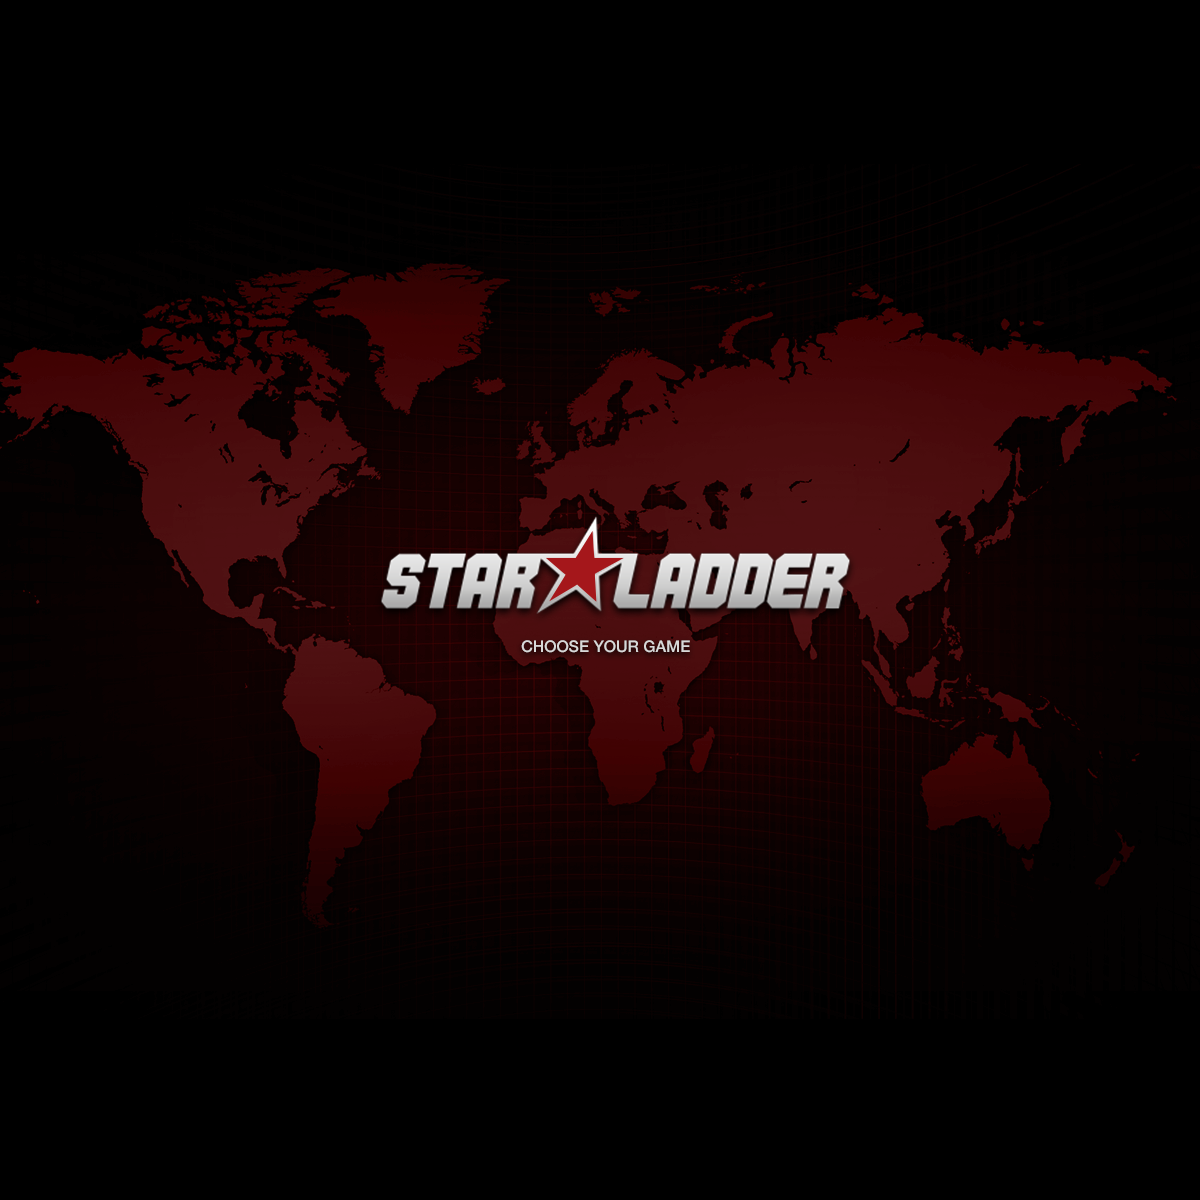 starladder choose your game